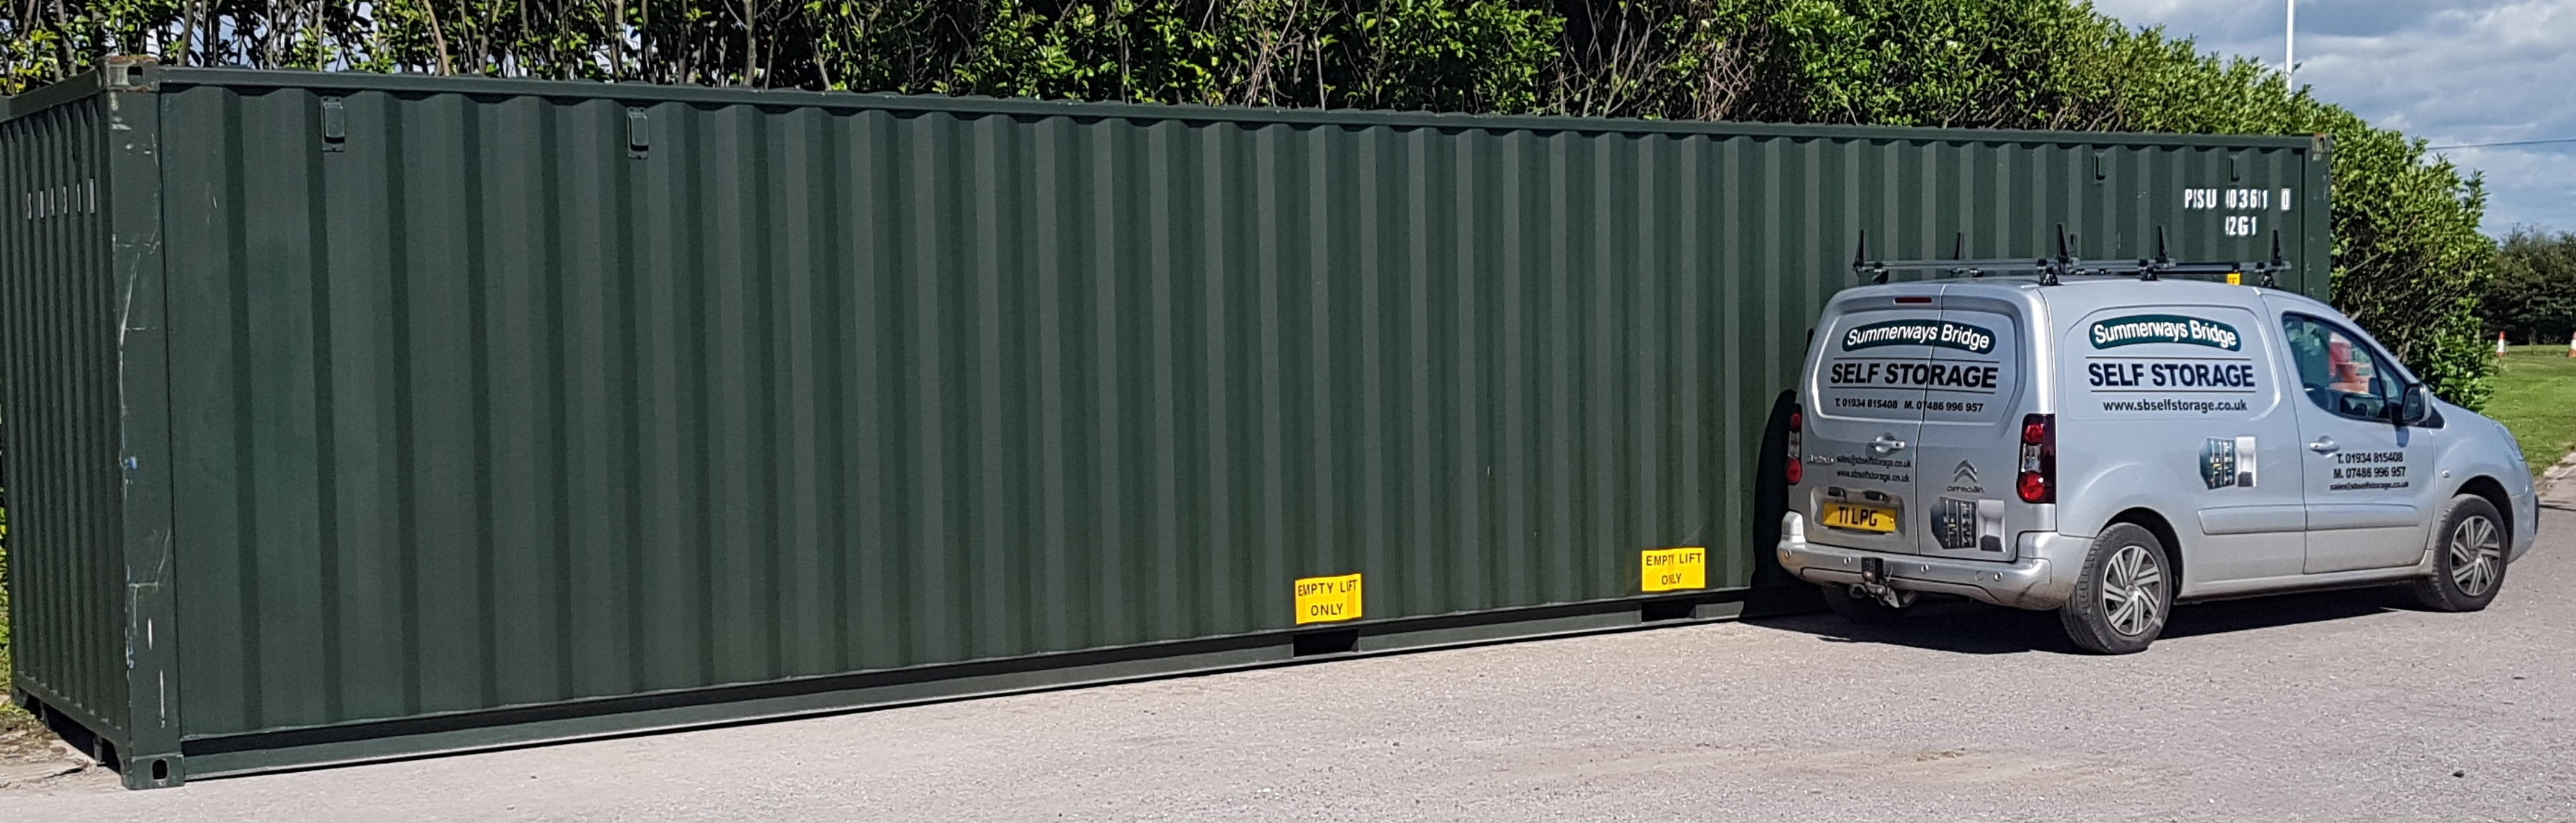 Largest container with company van